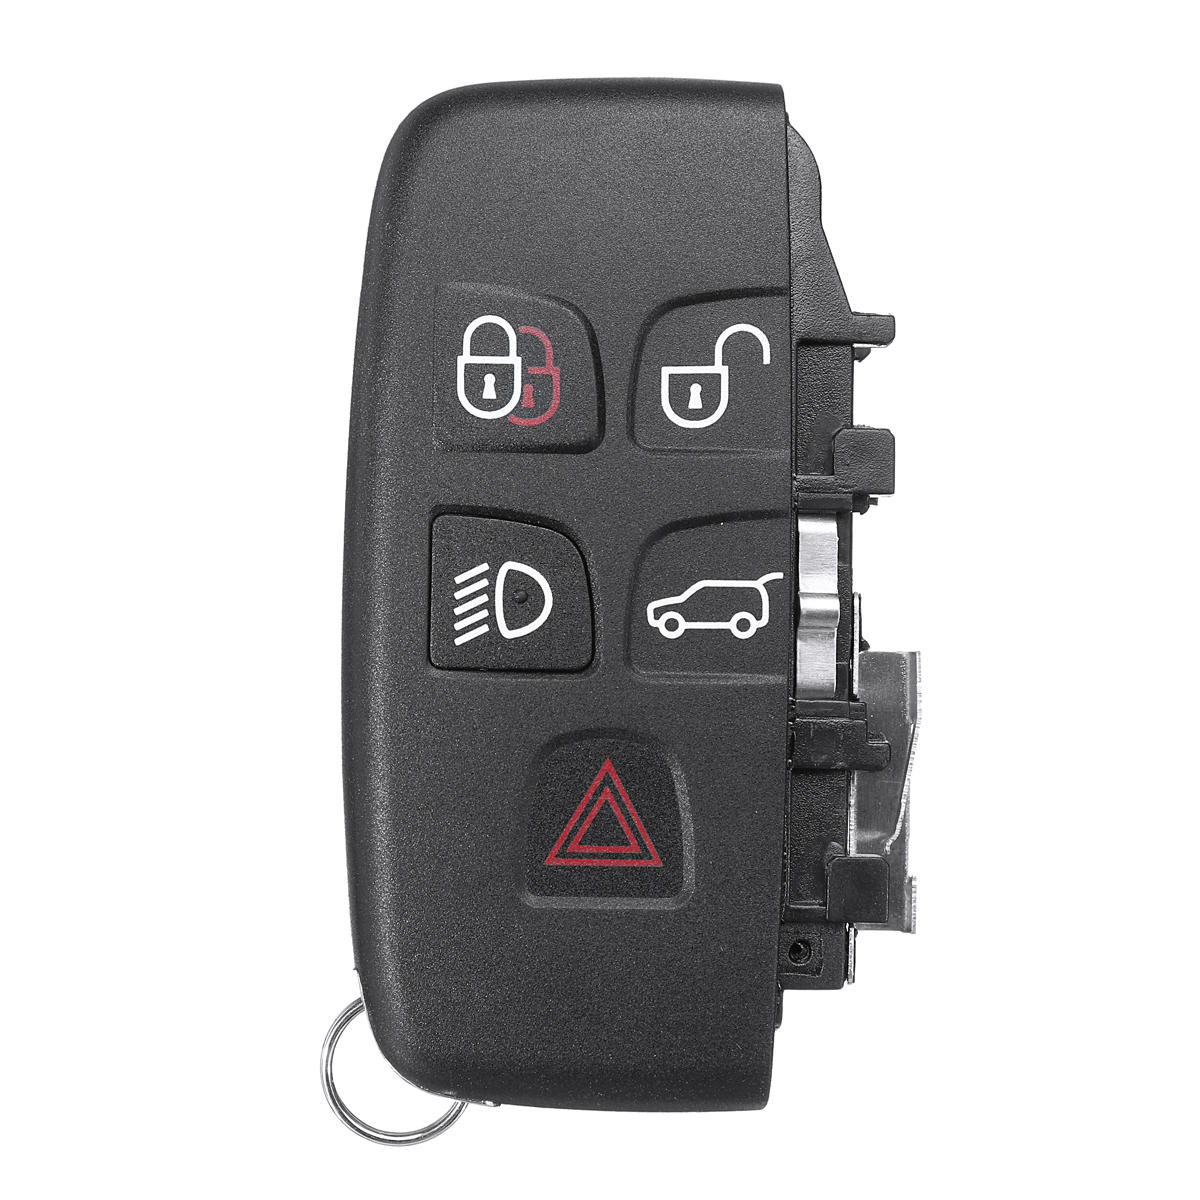 5 Button Remote Key Fob Case Smart Key Shell For LAND ROVER LR4 Range Rover Sport Evoque